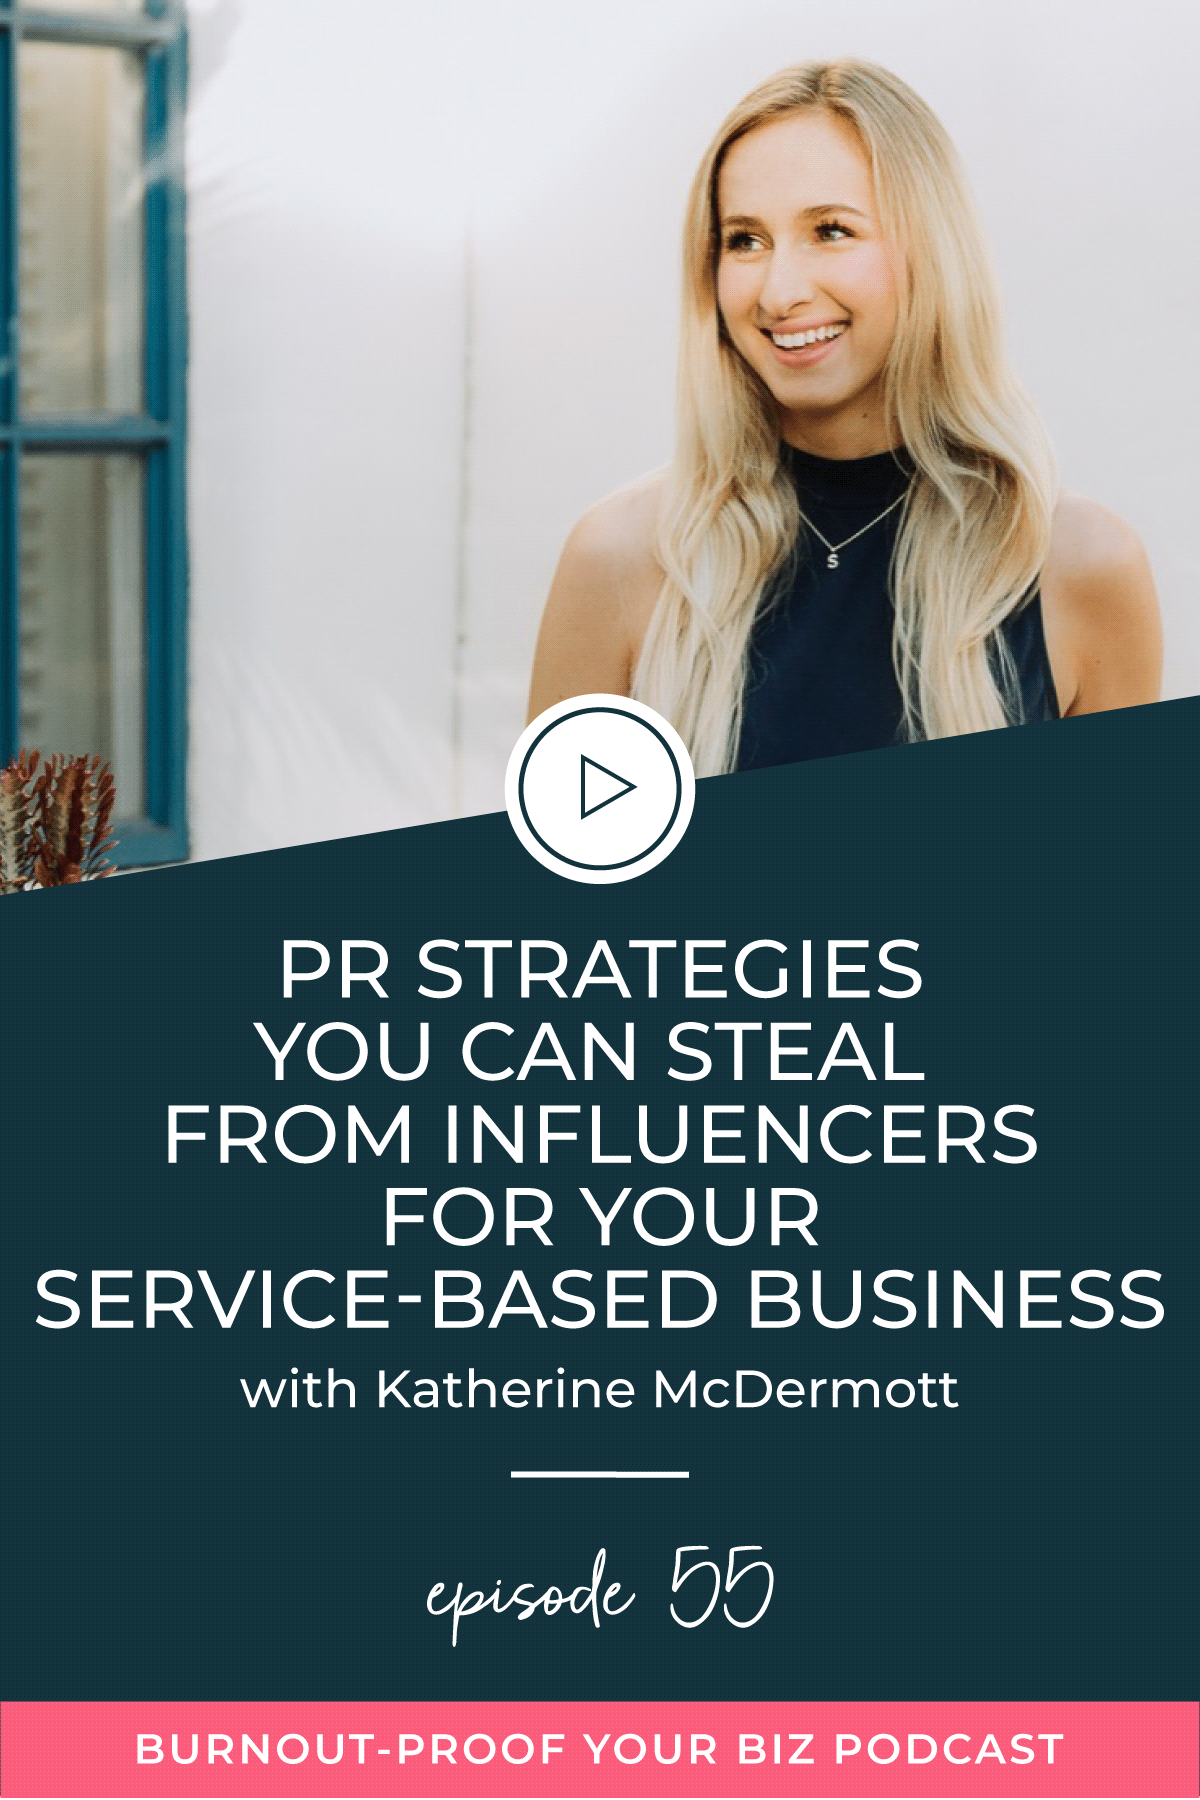 Burnout-Proof Your Biz Podcast with Chelsea B Foster | Episode 055 - PR Strategies to Steal From Influencers and Use in Your Service-Based Business with Katherine McDermott of Slightly Savvy | Learn how to run your biz and live your dream life on your own terms without the fear of burnout.  |||  PUBLIC RELATIONS FOR SERVICE-BASED BUSINESSES | BRAND PARTNERSHIPS | PR STRATEGIES THAT INFLUENCERS USE | ENTREPRENEUR INFLUENCER | WORKING WITH BRANDS AS AN ENTREPRENEUR | BRAND COLLABORATIONS | AFFILIATE MARKETING | BECOMING AN INFLUENCER | OUTSOURCING | BUSINESS COACH | WORKFLOW & PRODUCTIVITY SPECIALIST | SYSTEMS & ORGANIZATION SPECIALIST FOR COACHES | ADD MORE FREEDOM TO YOUR LIFE | BUSINESS COACH FOR BLOGGERS